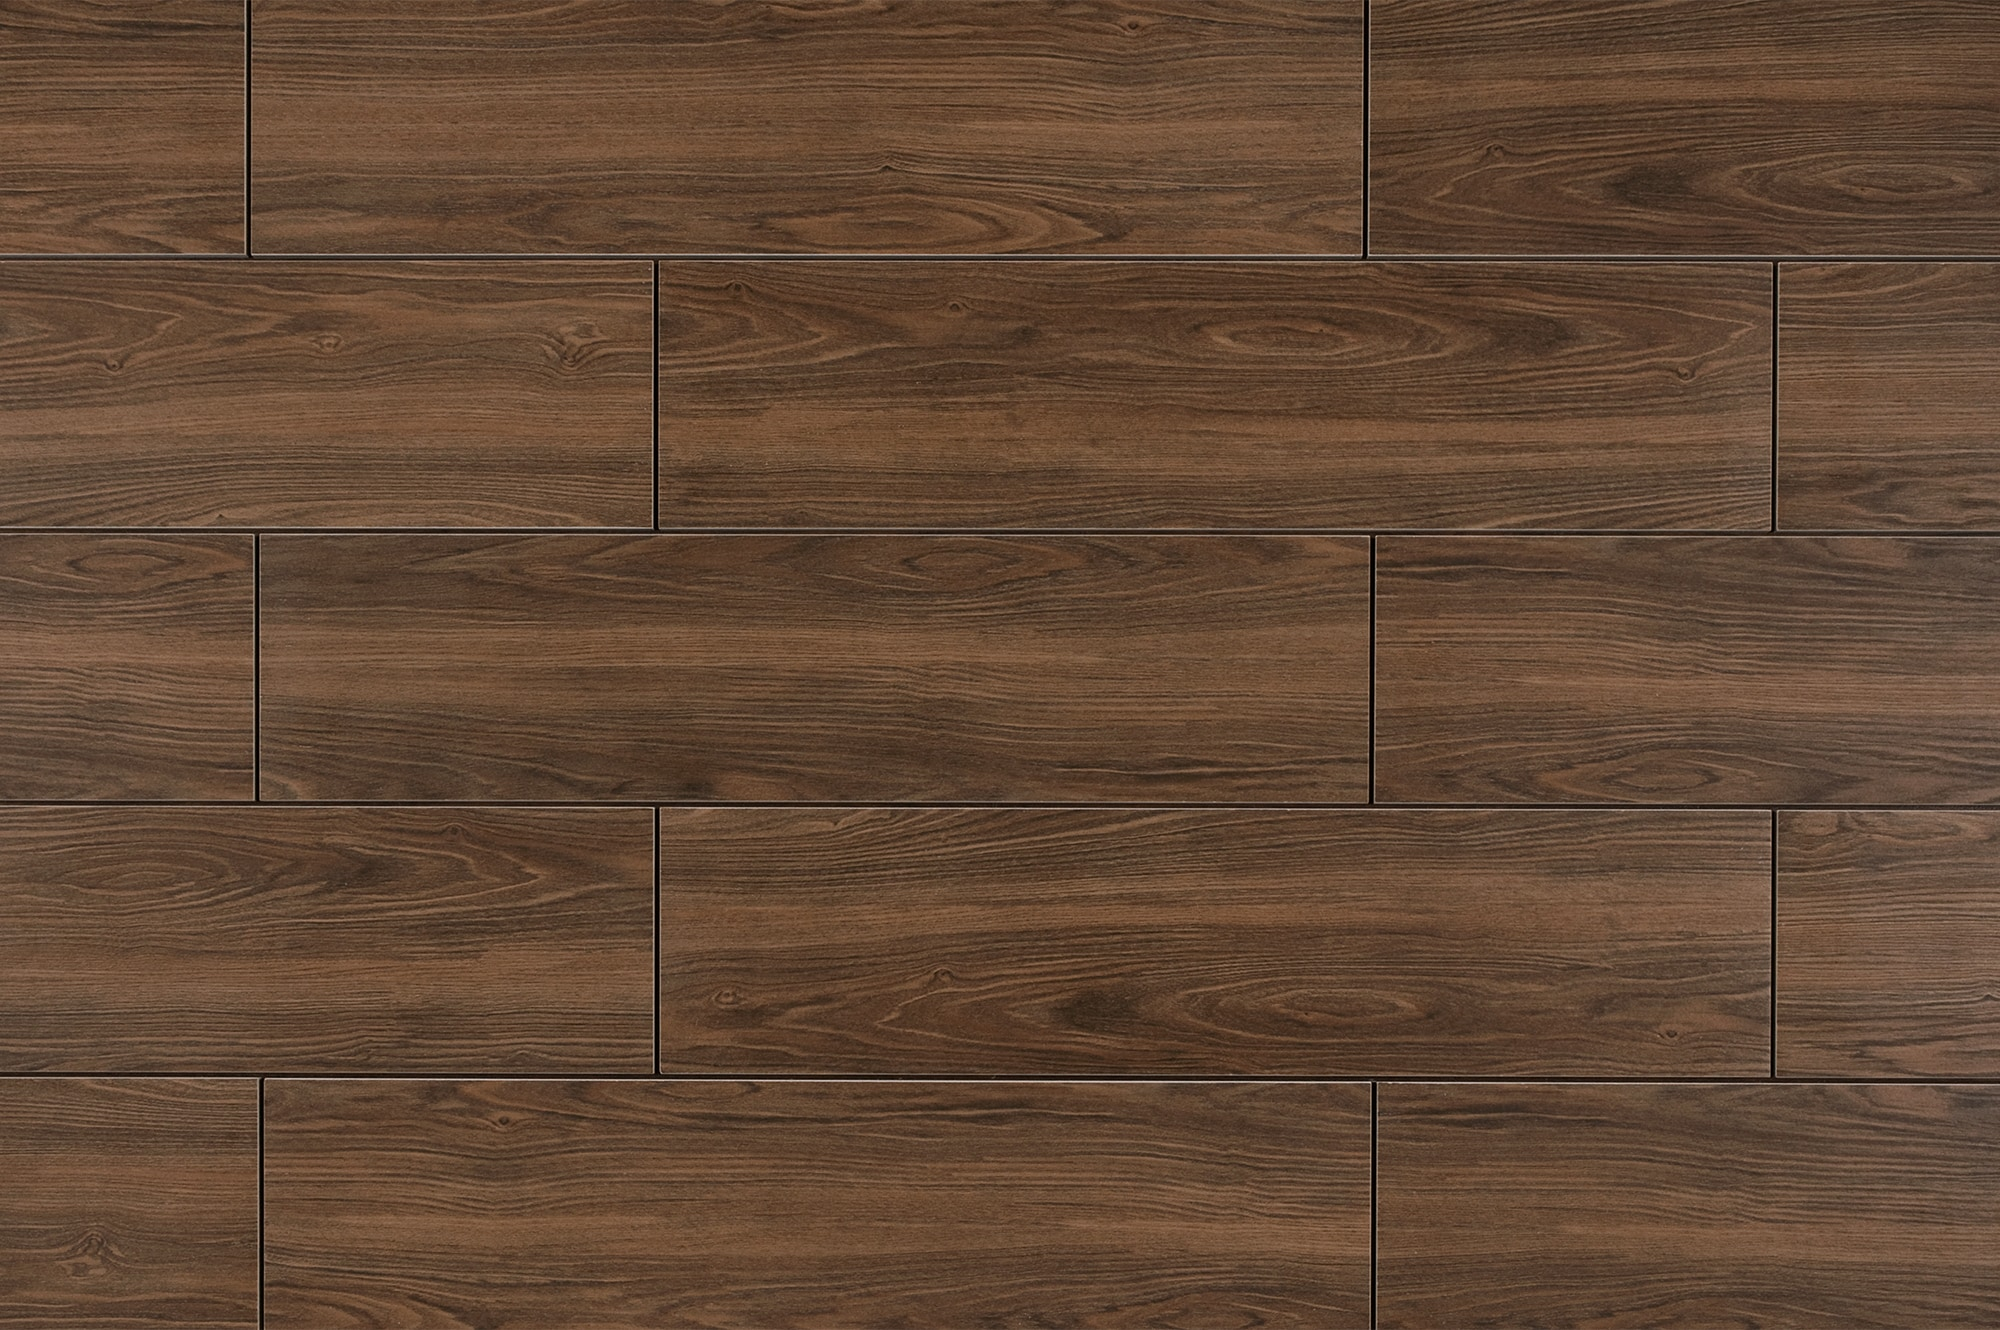 Free samples salerno porcelain tile hampton wood series free samples salerno porcelain tile hampton wood series chestnut 6x24 dailygadgetfo Choice Image